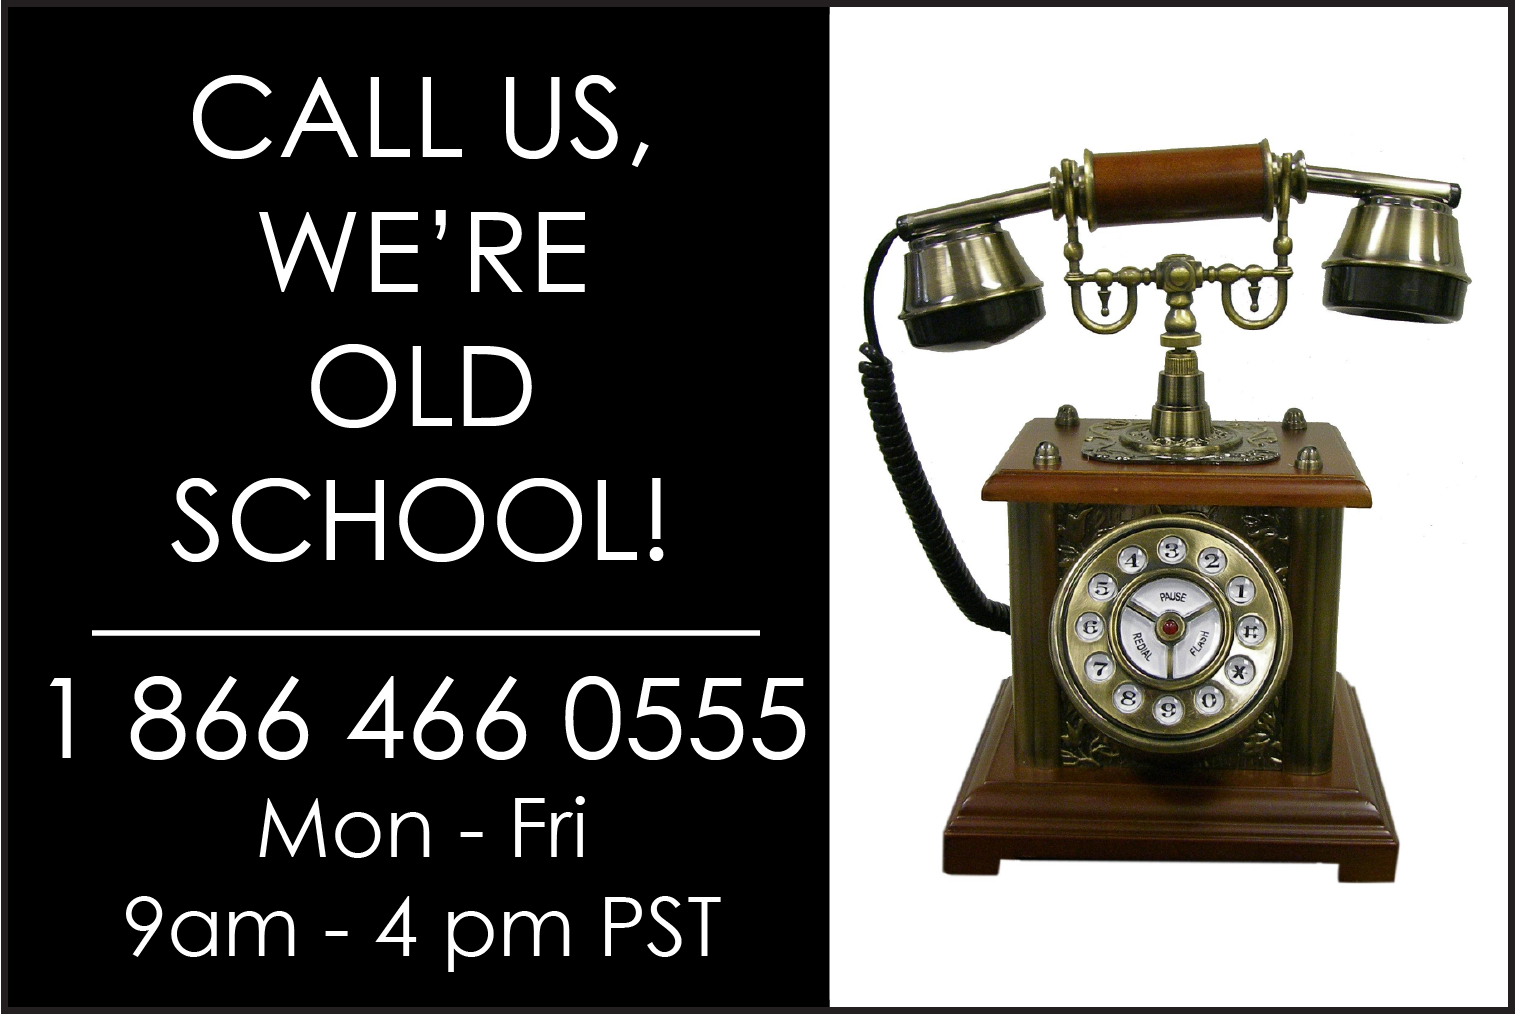 Got questions? We've got answers! Please call us at 1(866)466-0555